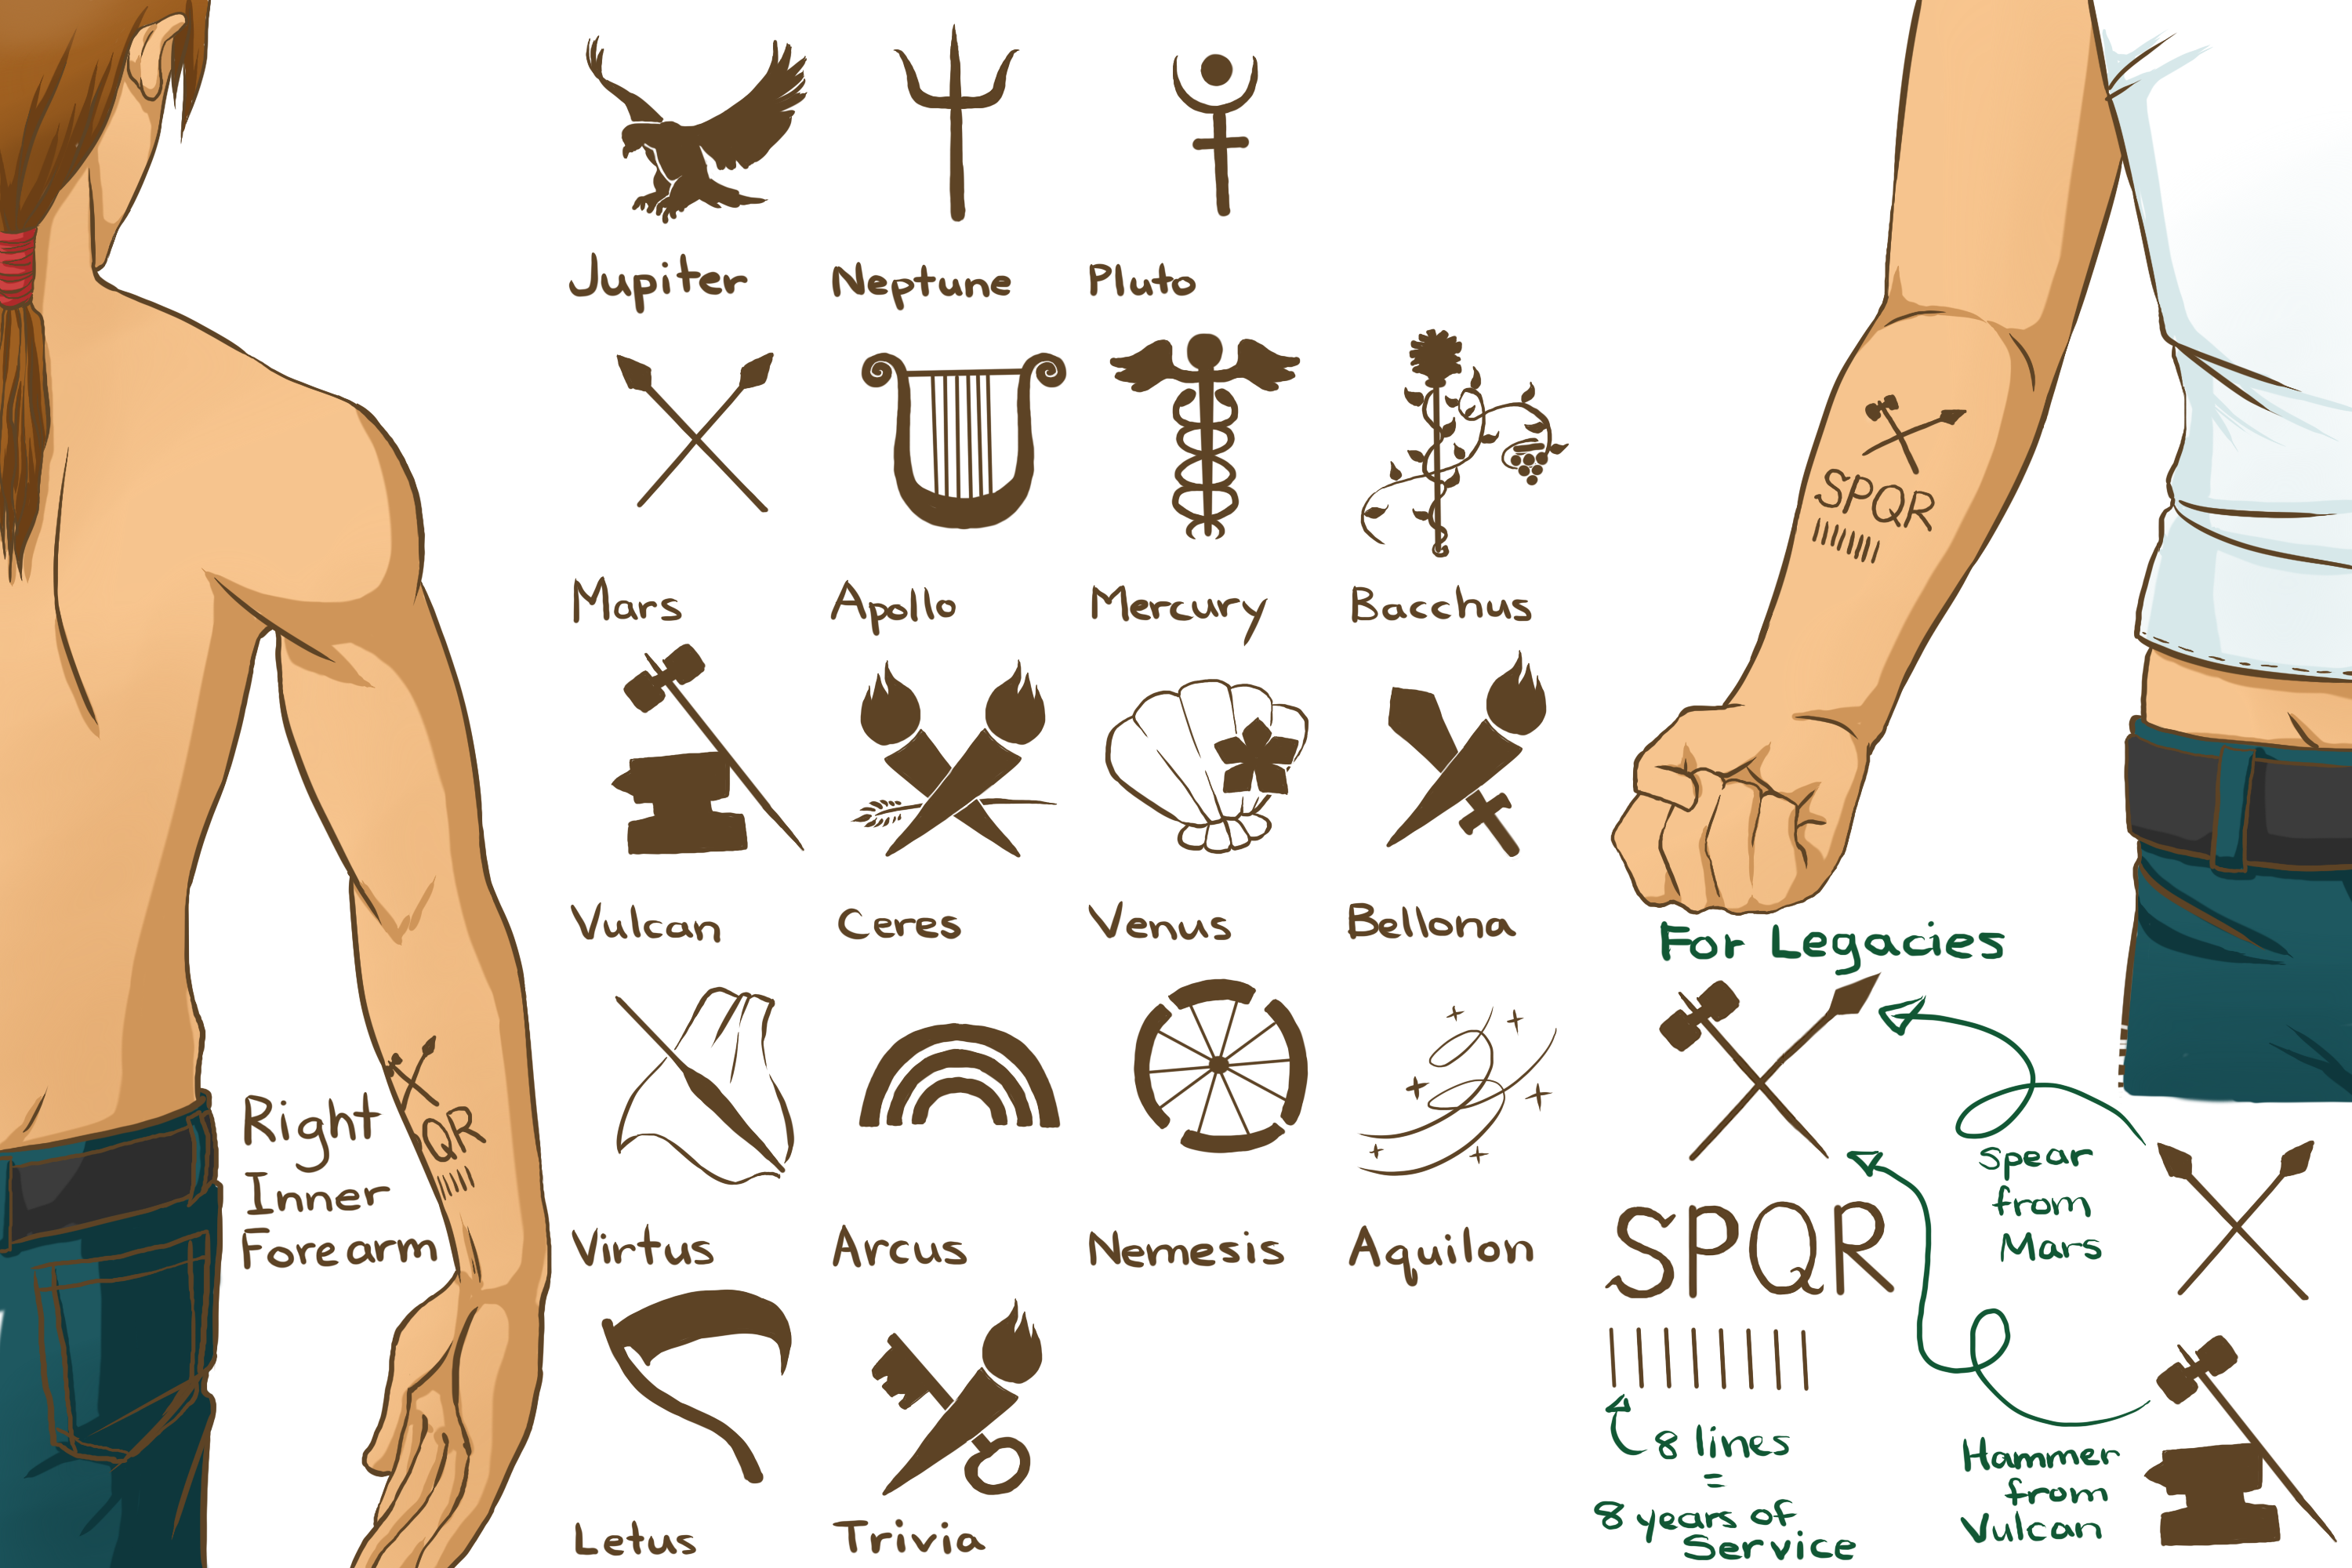 C J Tattoo Reference Sheet By Chiyokins On Deviantart